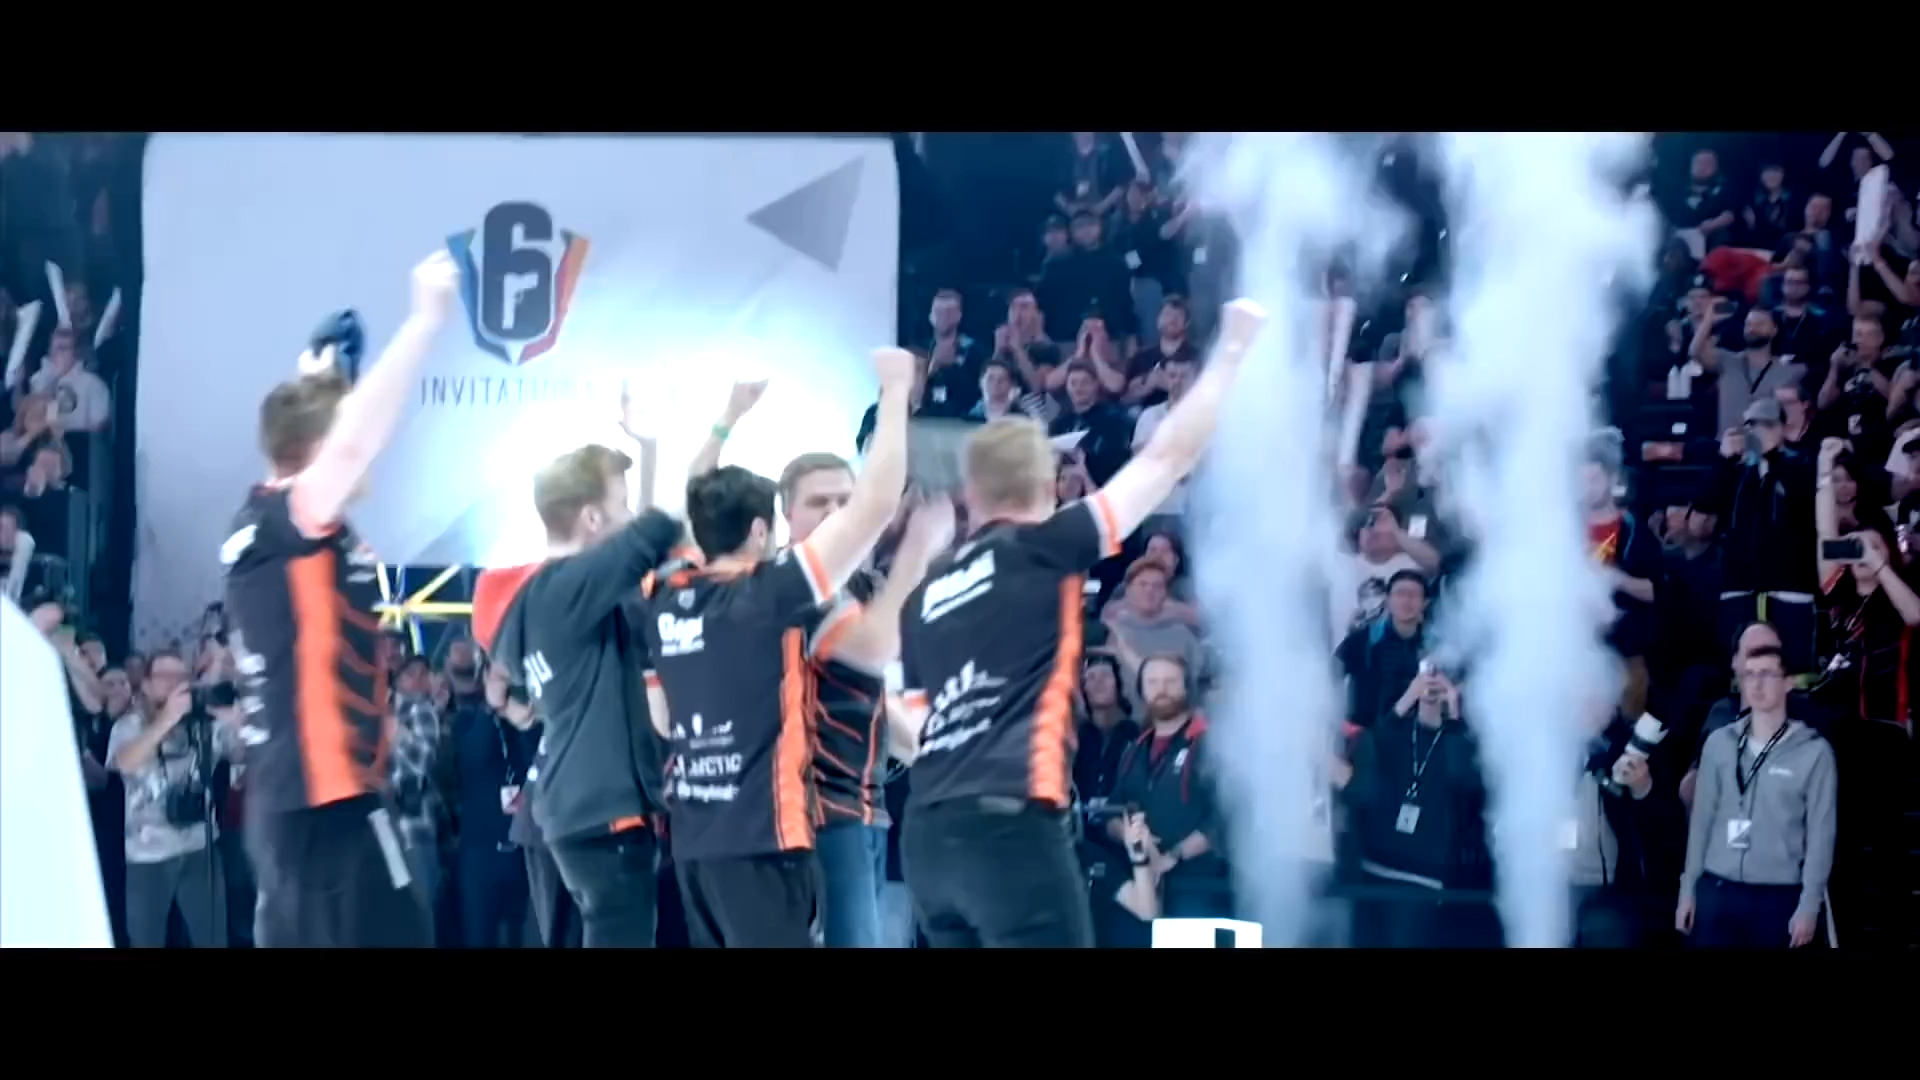 Trailer for the Rainbow Six Invitational 2019